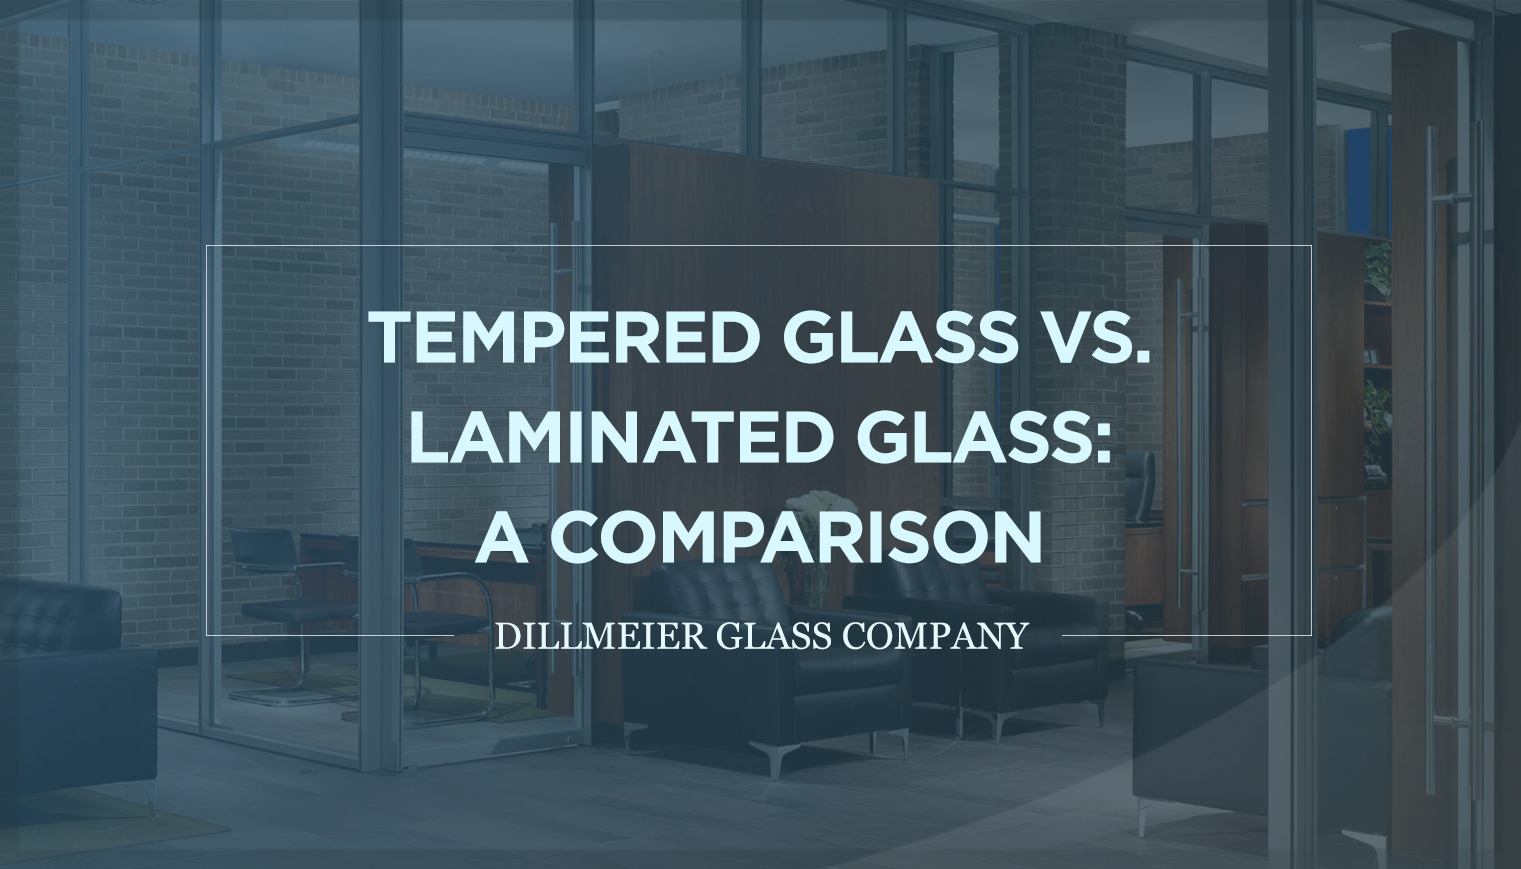 Tempered Glass vs. Laminated Glass: A Comparison